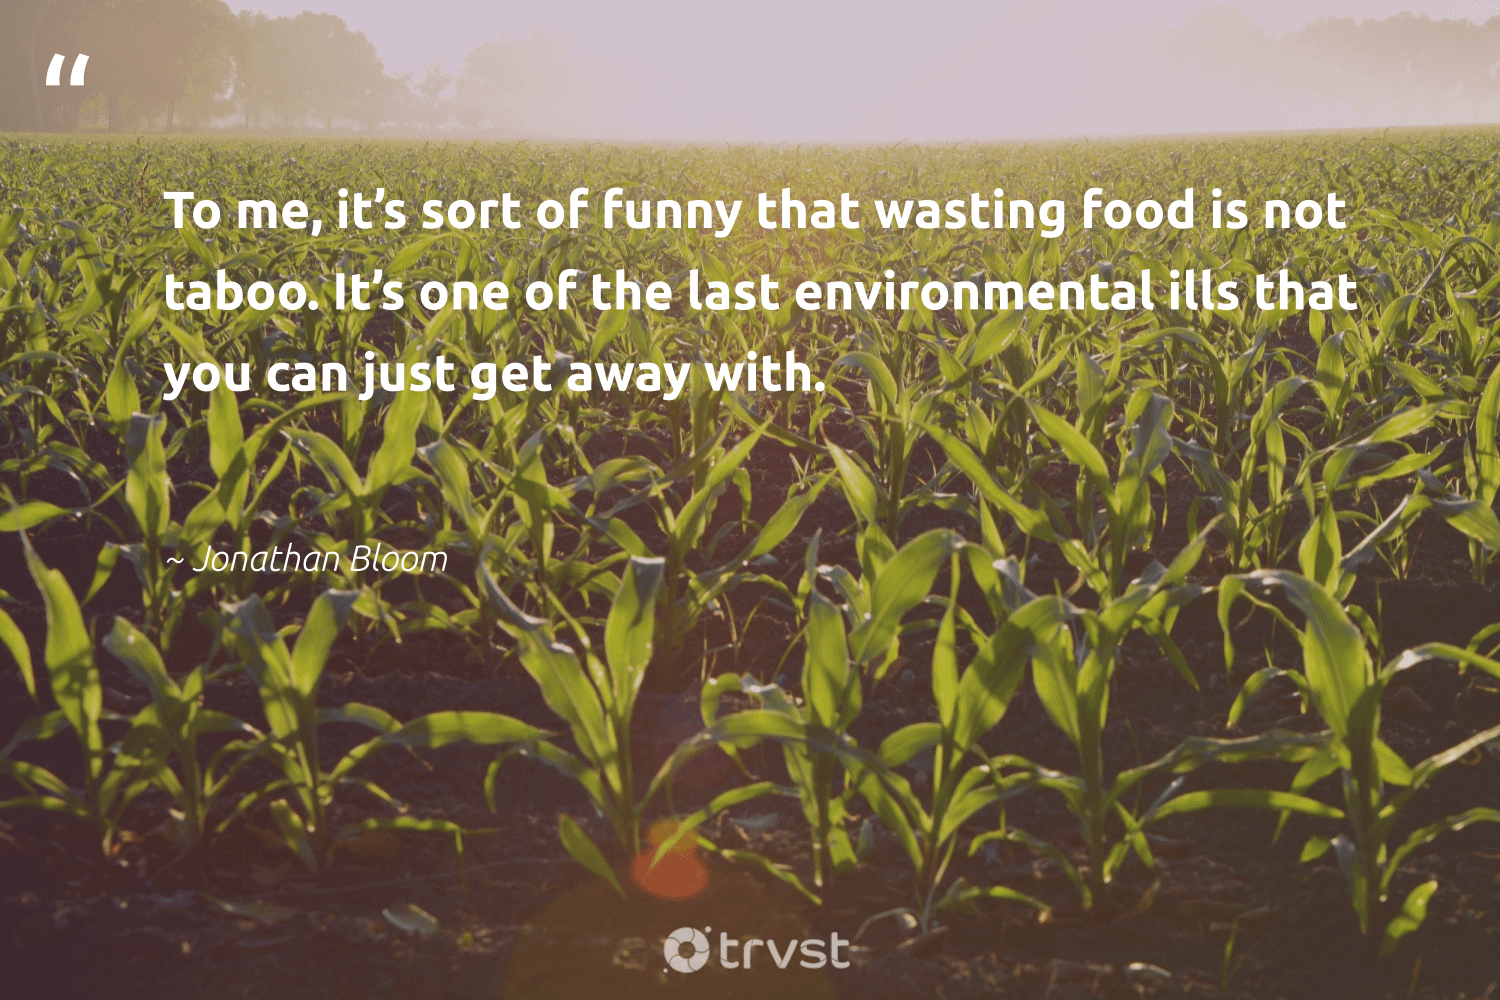 """""""To me, it's sort of funny that wasting food is not taboo. It's one of the last environmental ills that you can just get away with.""""  - Jonathan Bloom #trvst #quotes #environmental #food #foodforthepoor #wastenotwantnot #equalrights #impact #hungry #wecandobetter #inclusion #changetheworld"""